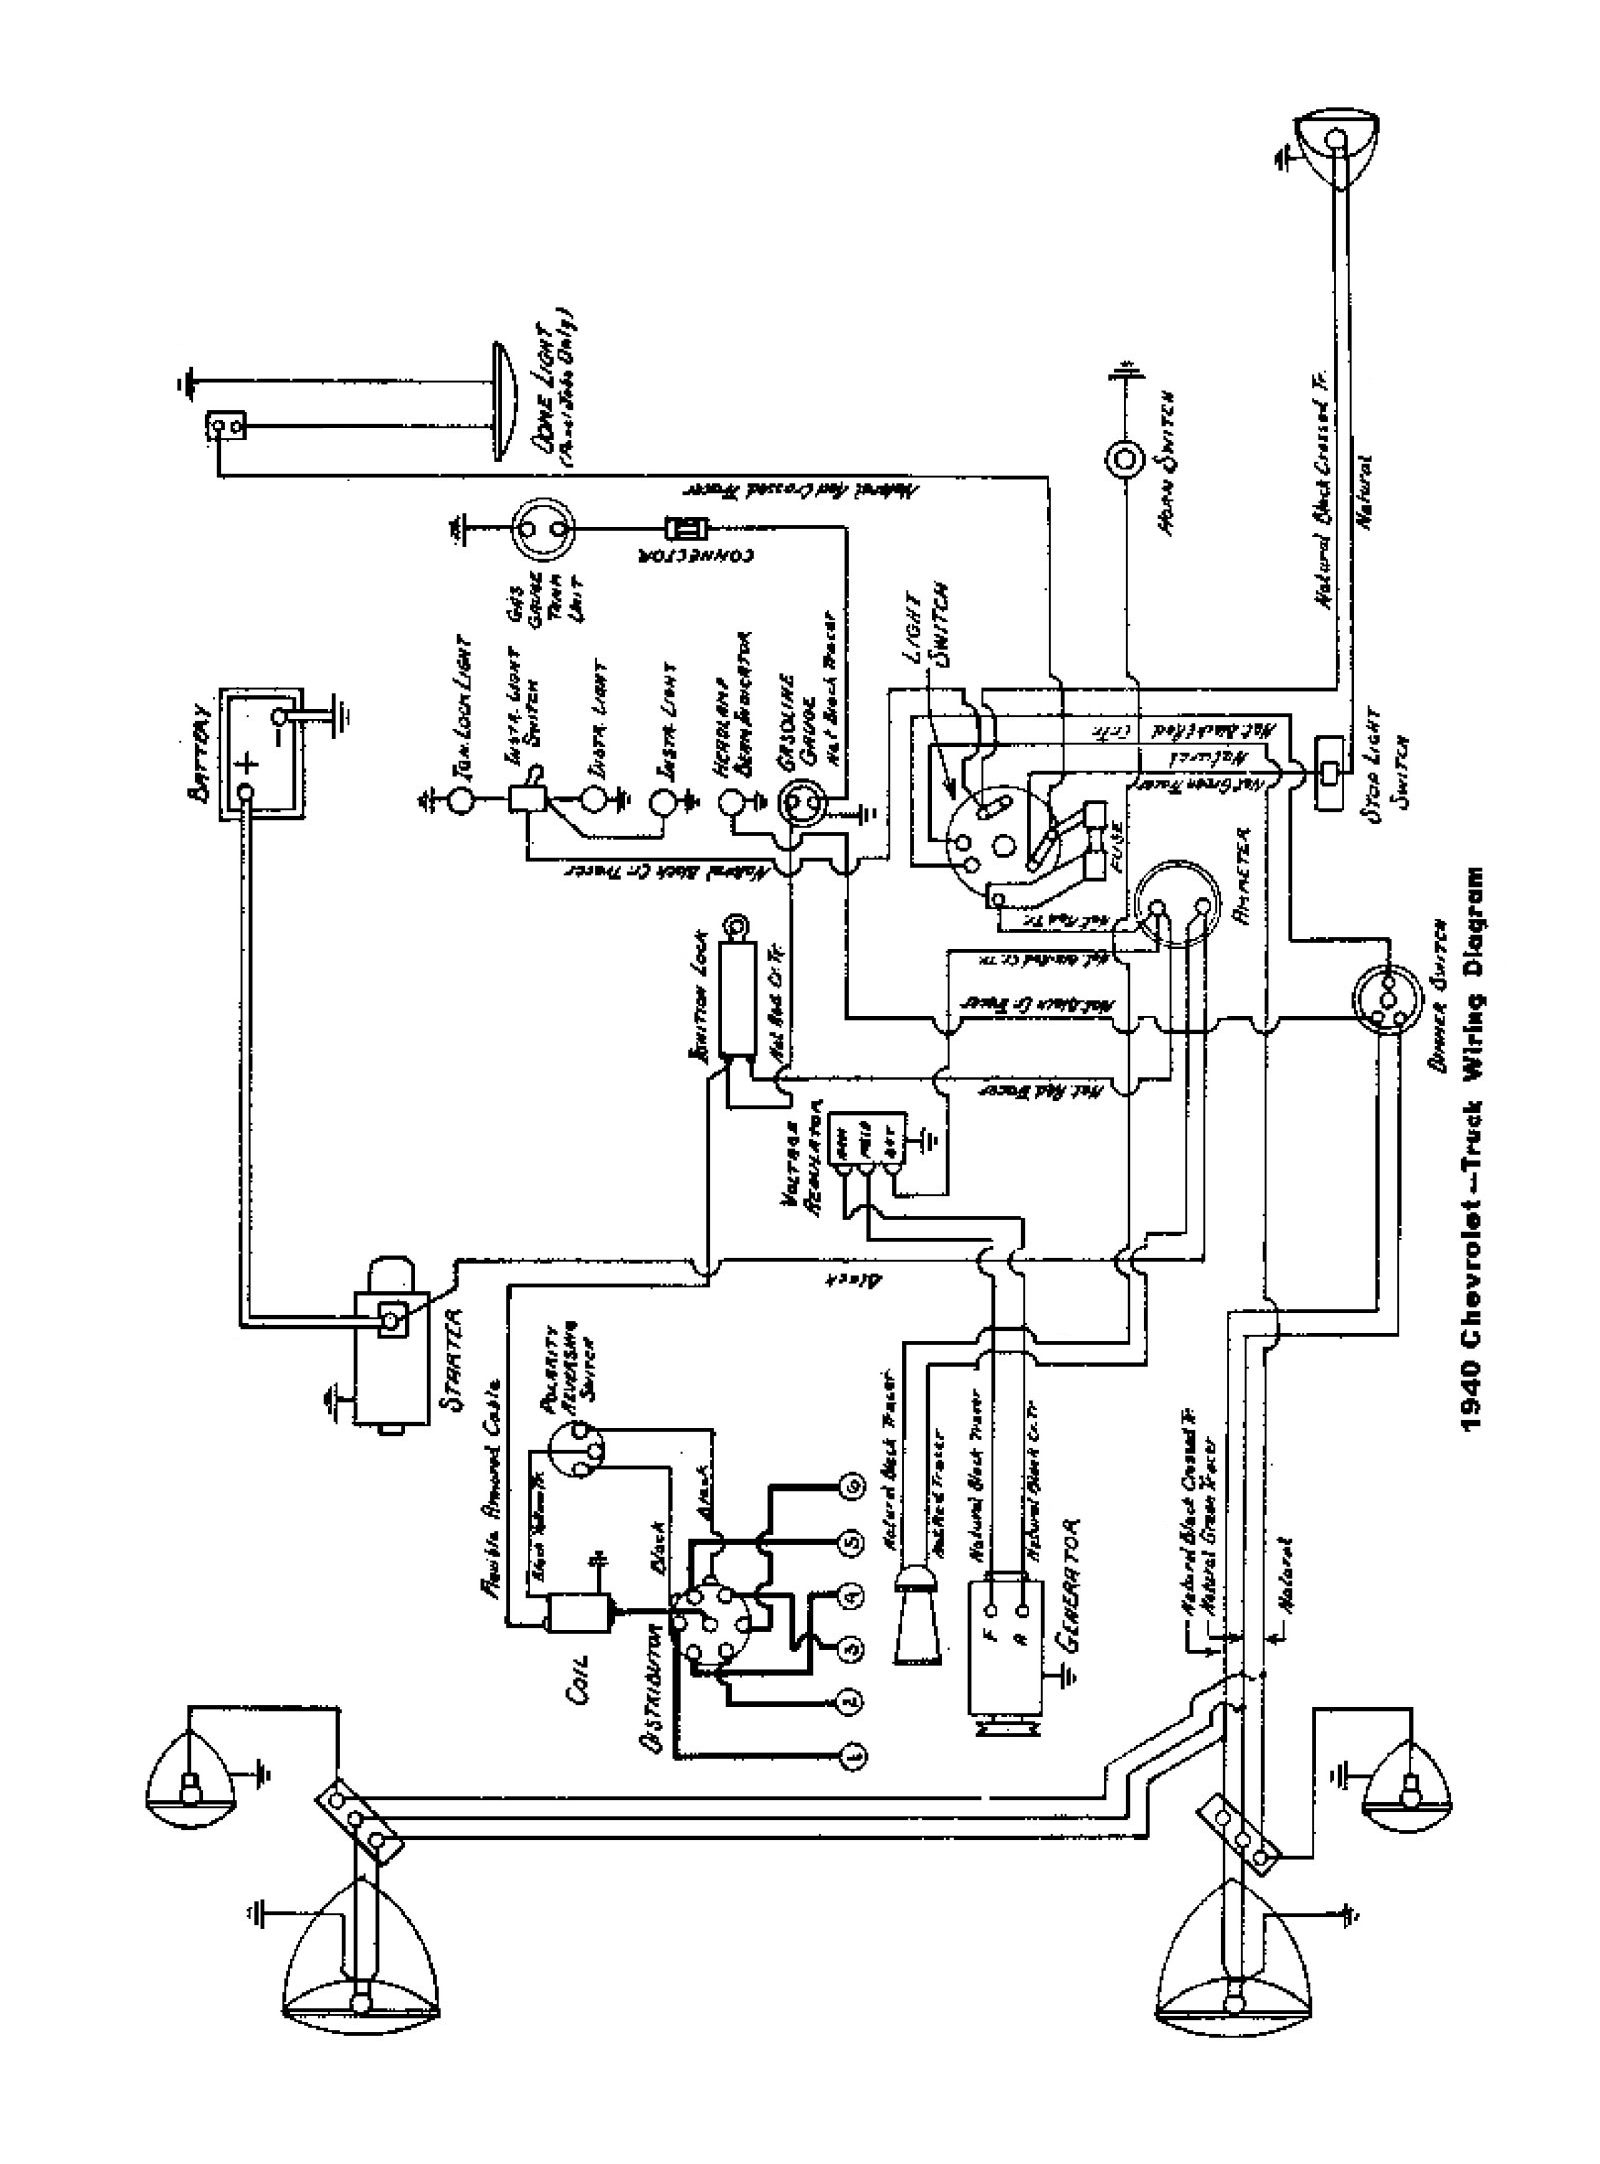 1931 ford model a wiring diagram